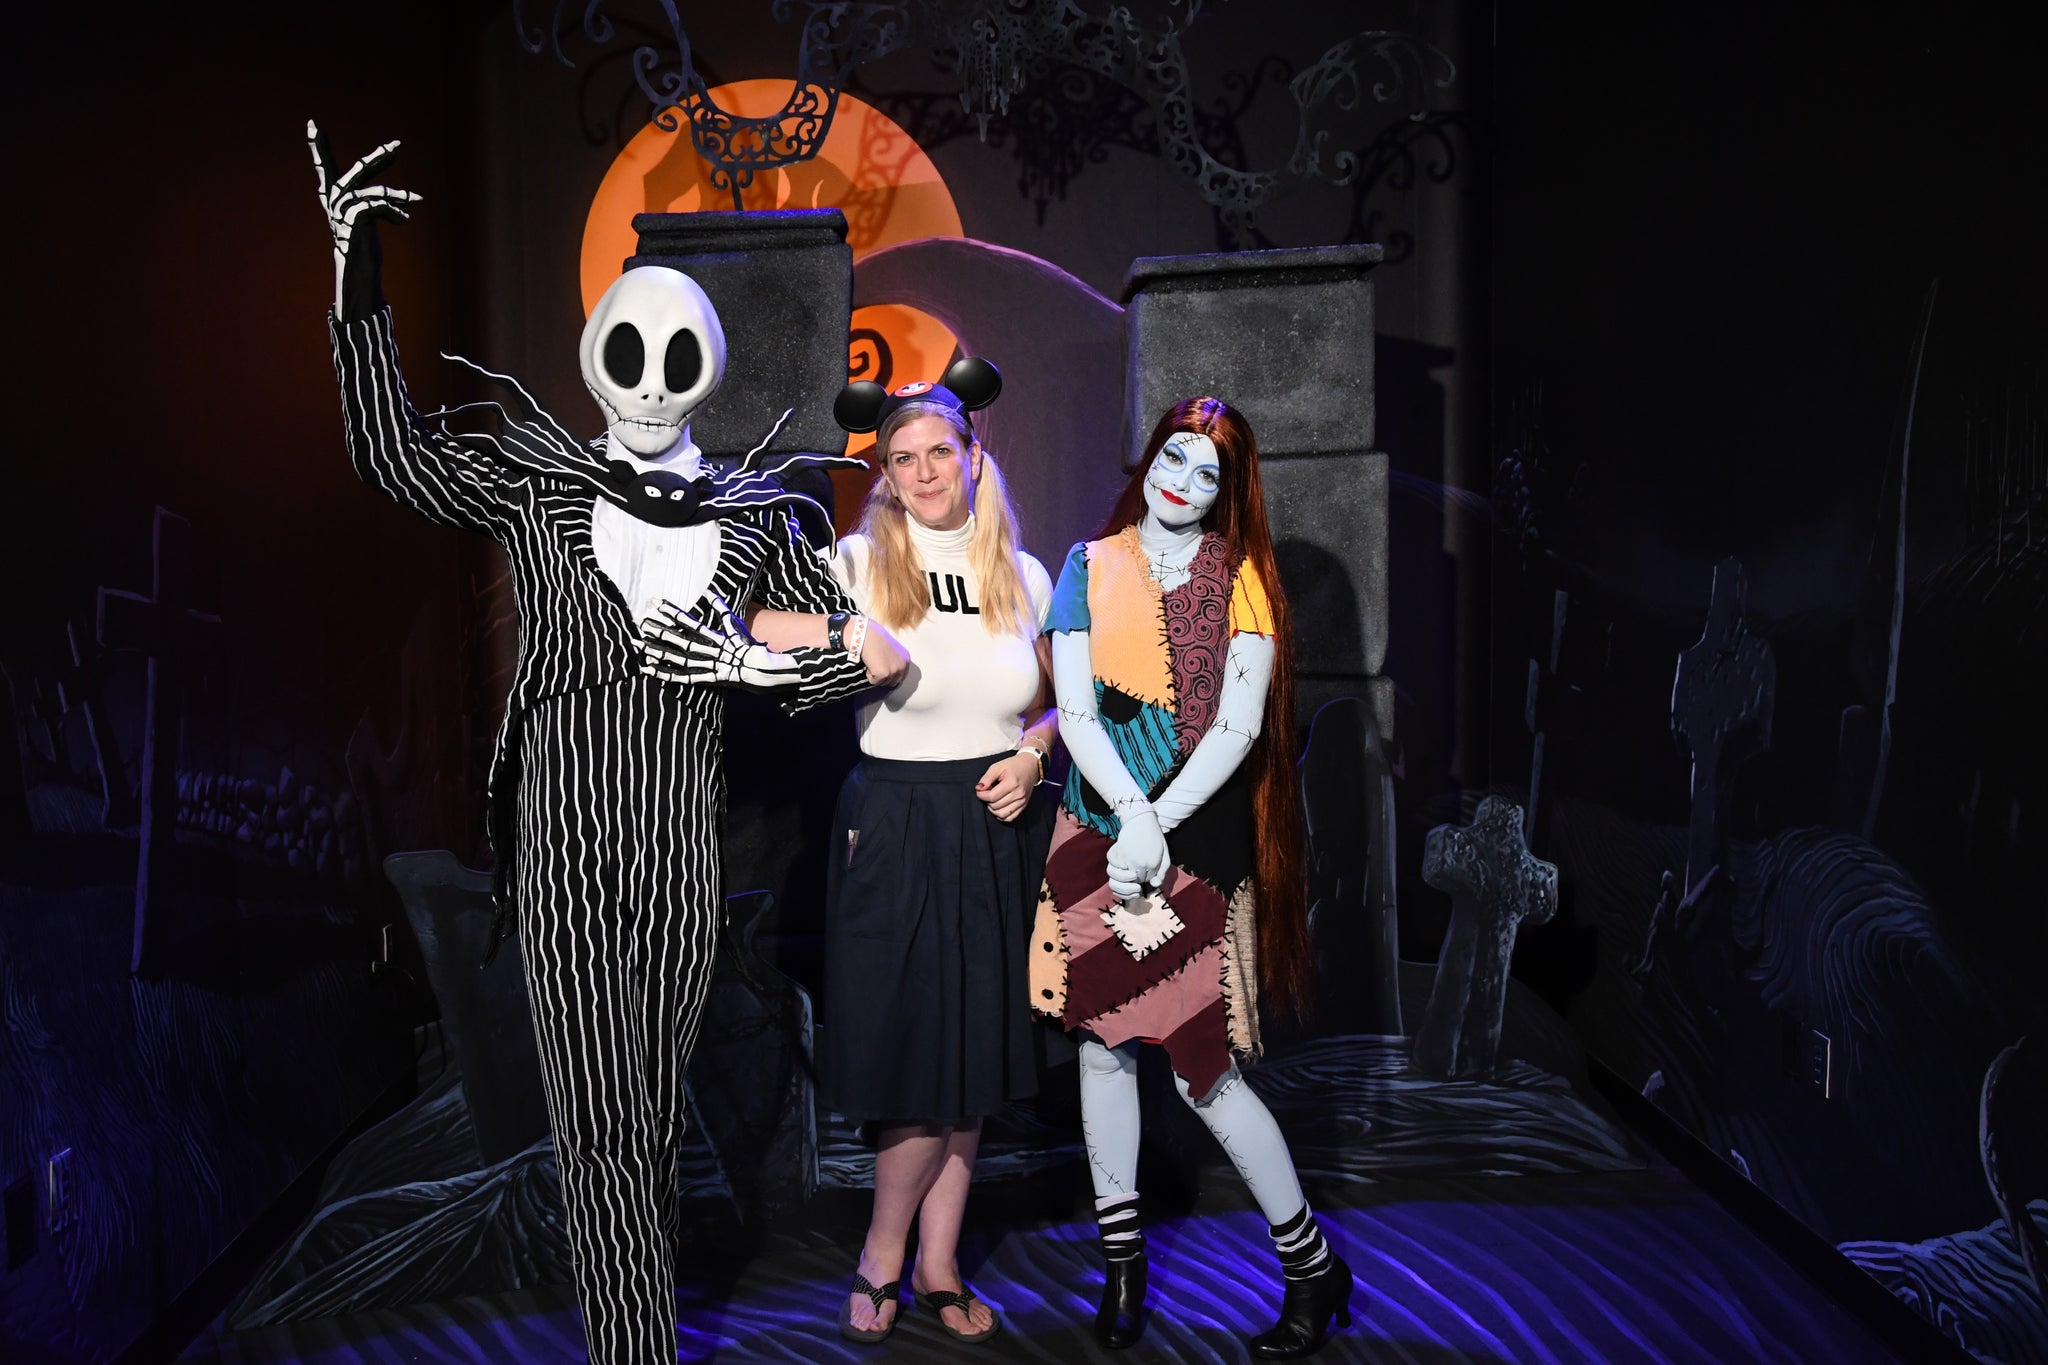 Jack Skellington and Sally character meet and greet